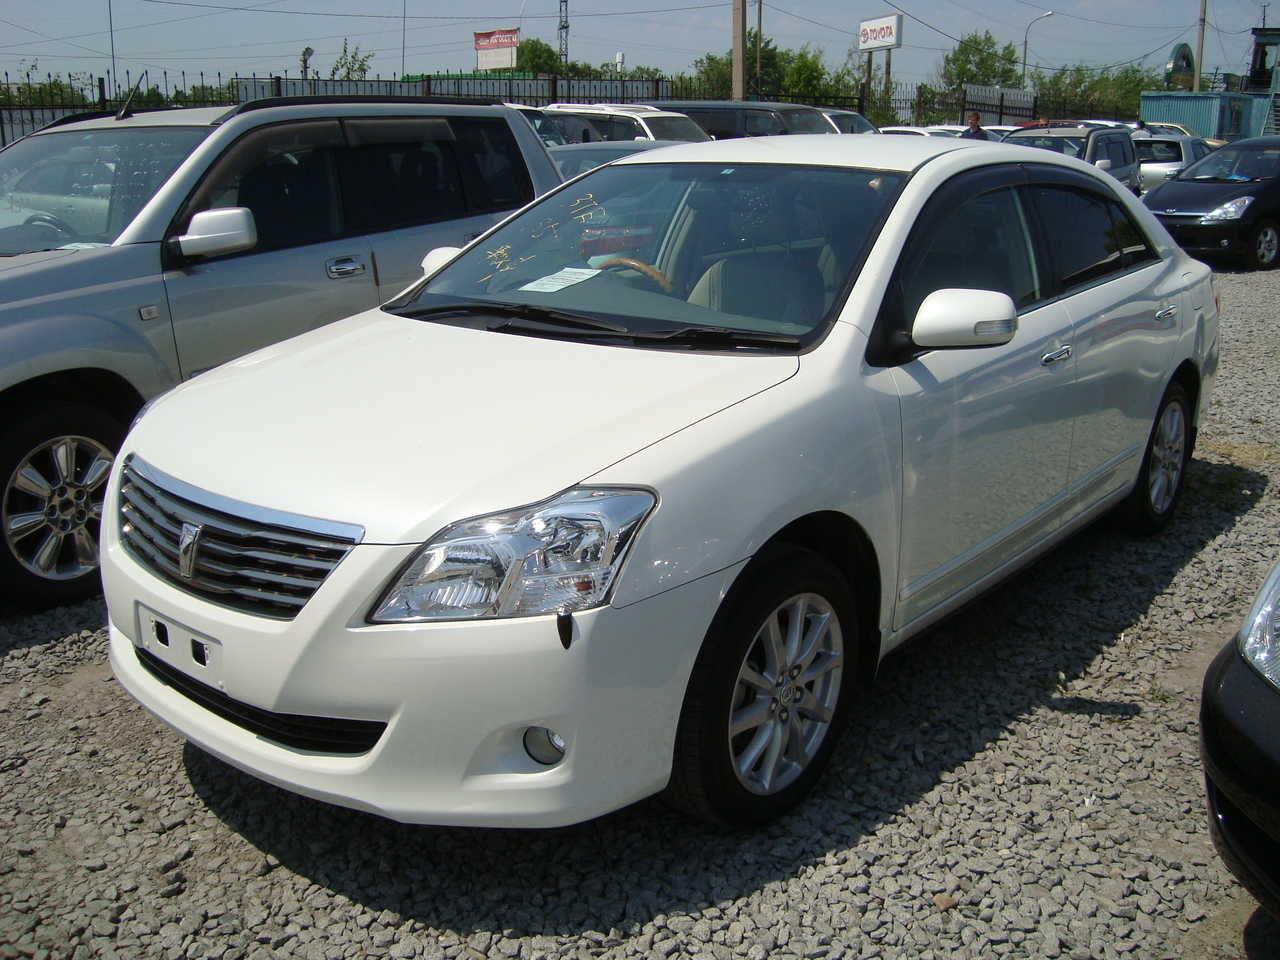 Used 2008 Toyota Premio Photos 1800cc Gasoline Ff